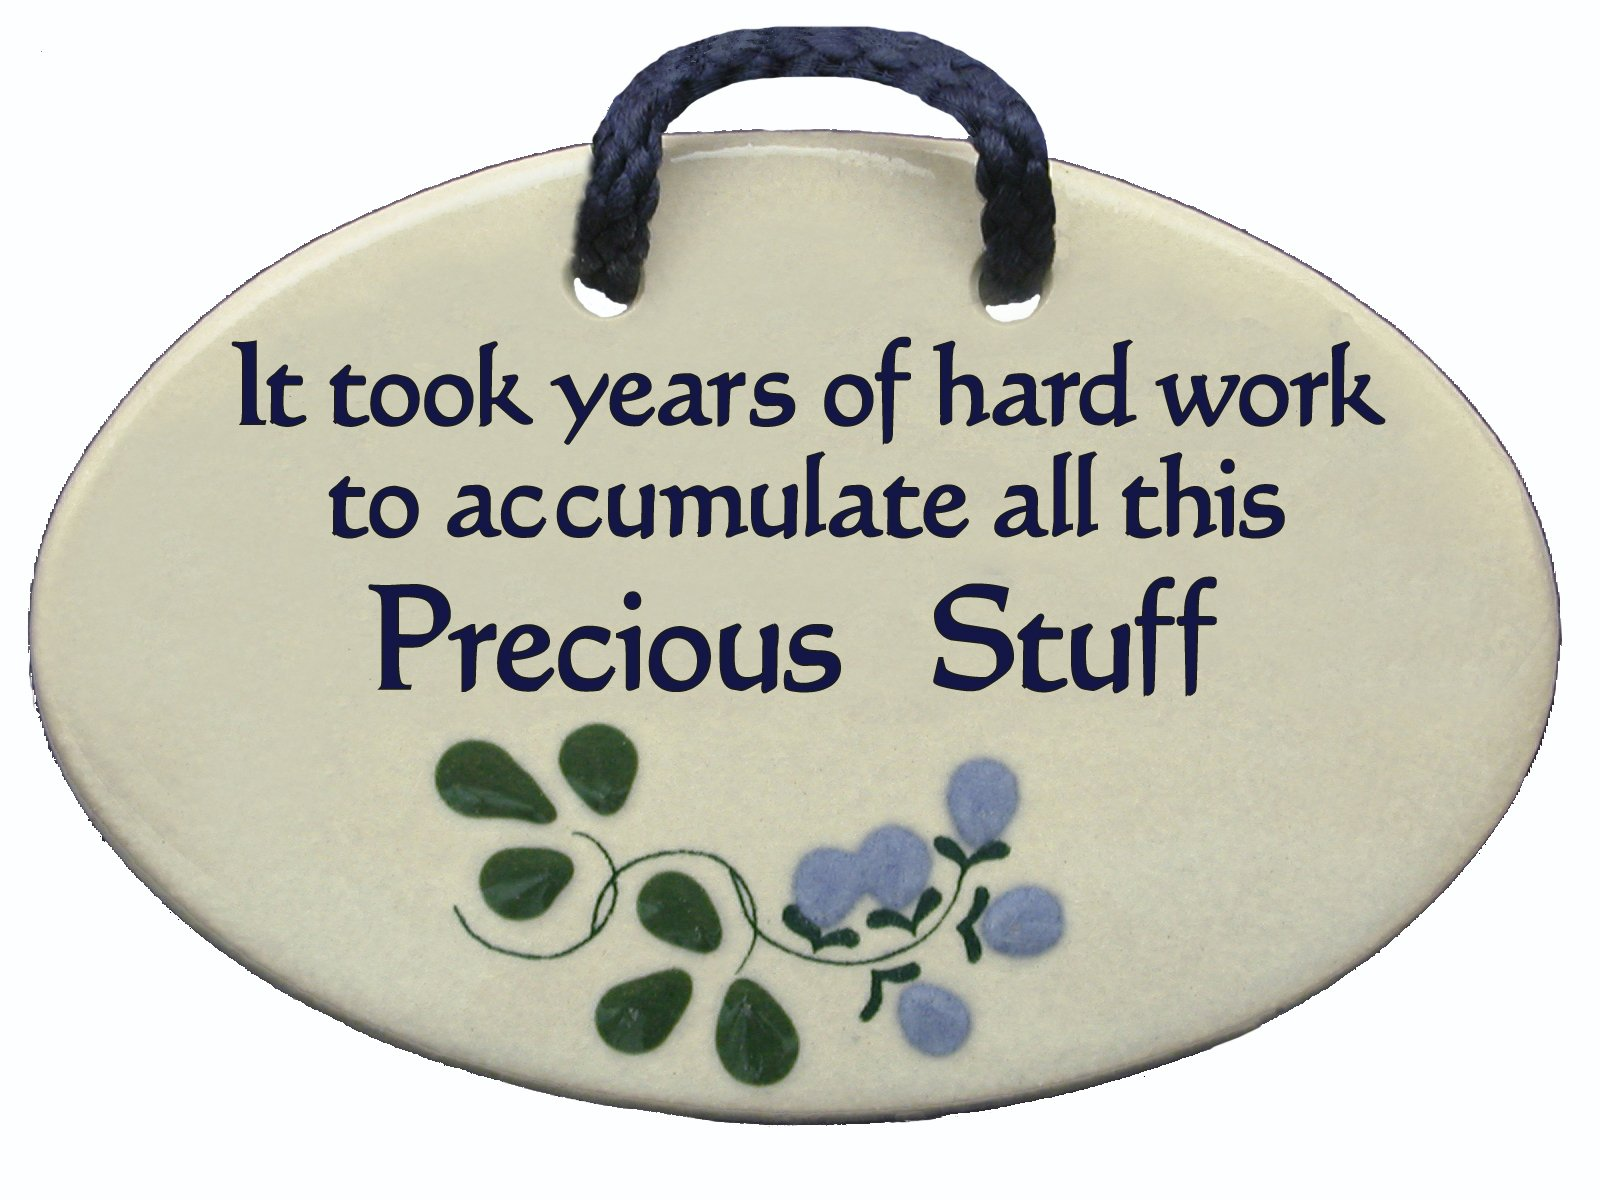 It took years of hard work to accumulate all this Precious Stuff. Ceramic wall plaques handmade in the USA for over 30 years. Reduced price offsets shipping cost.